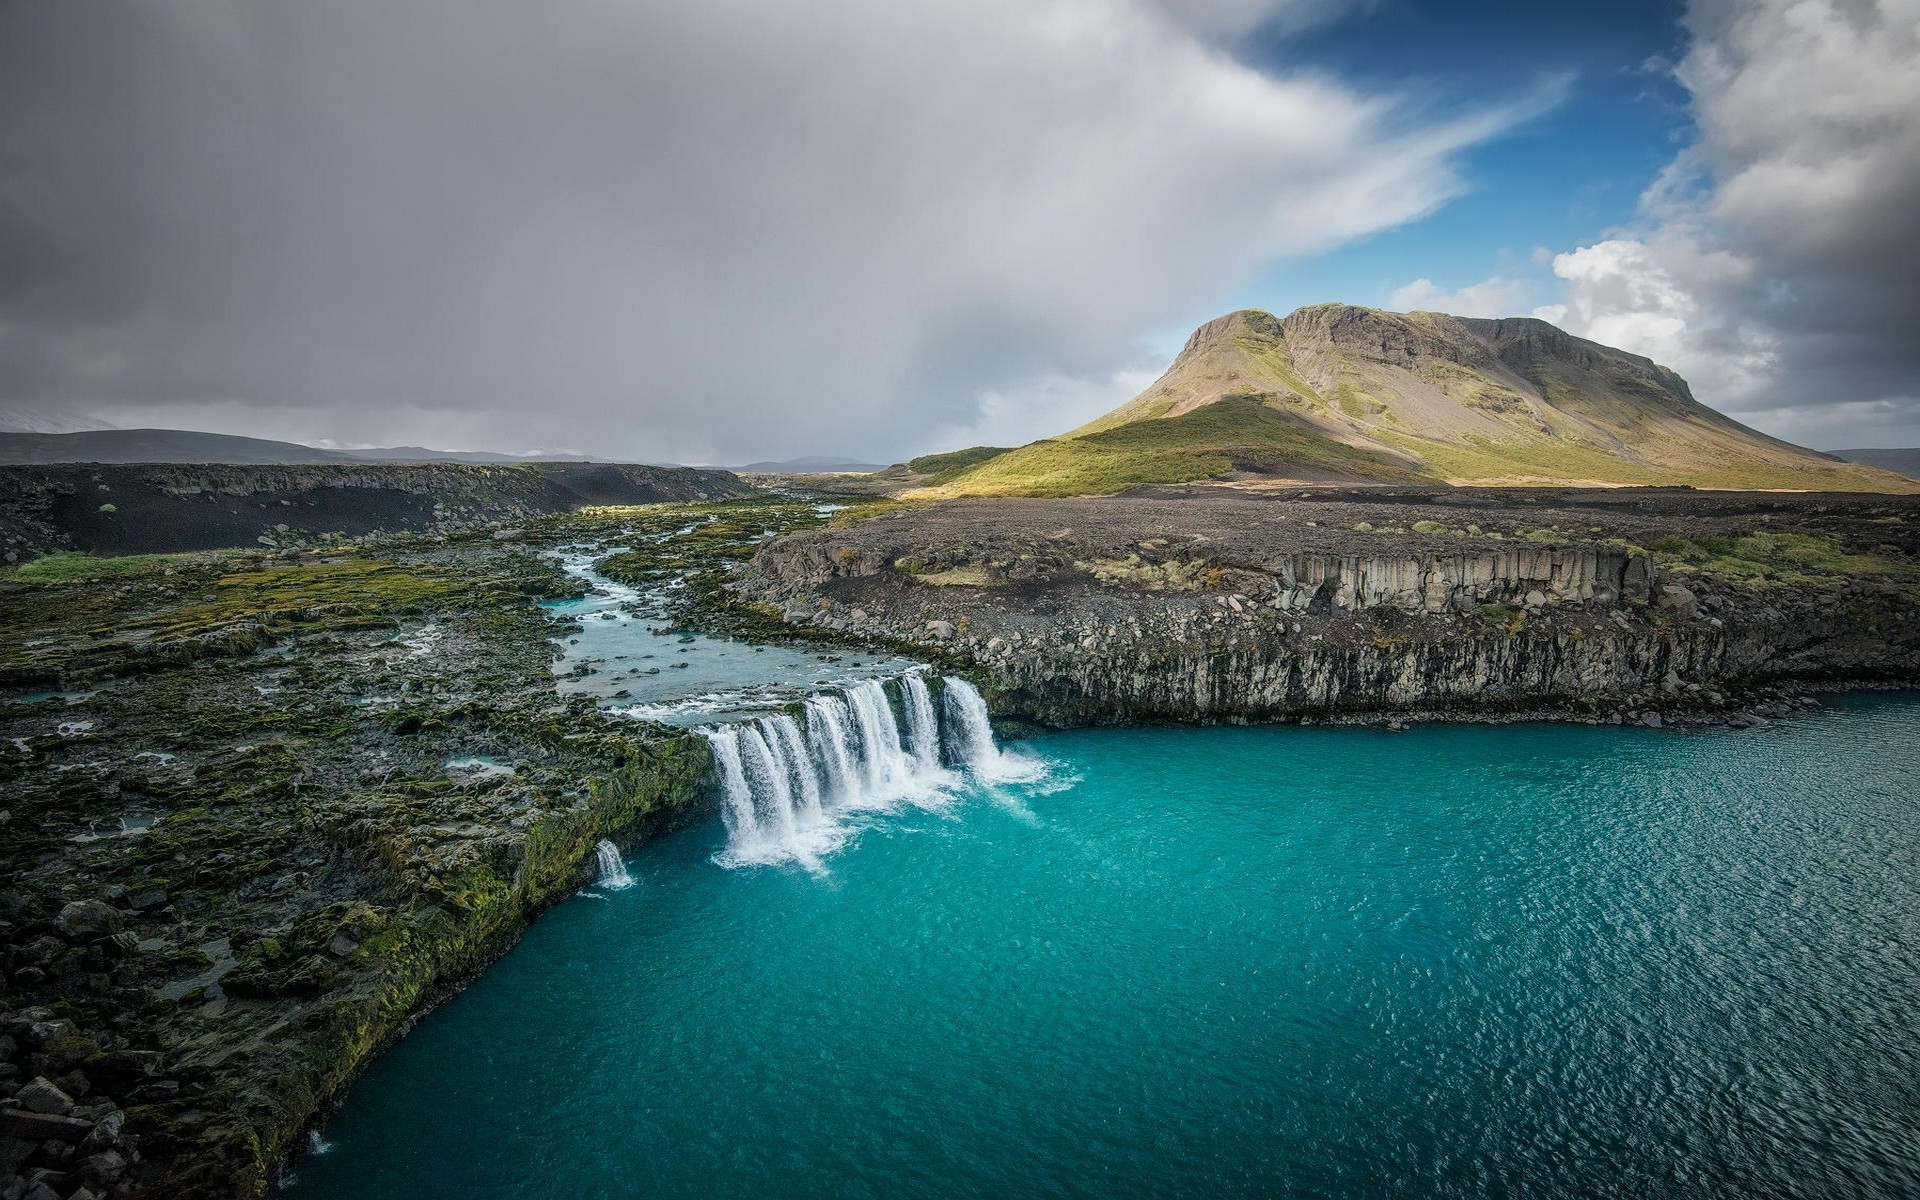 3d Waterfall Wallpaper For Mobile Landscape Nature Waterfall Iceland River Mountain